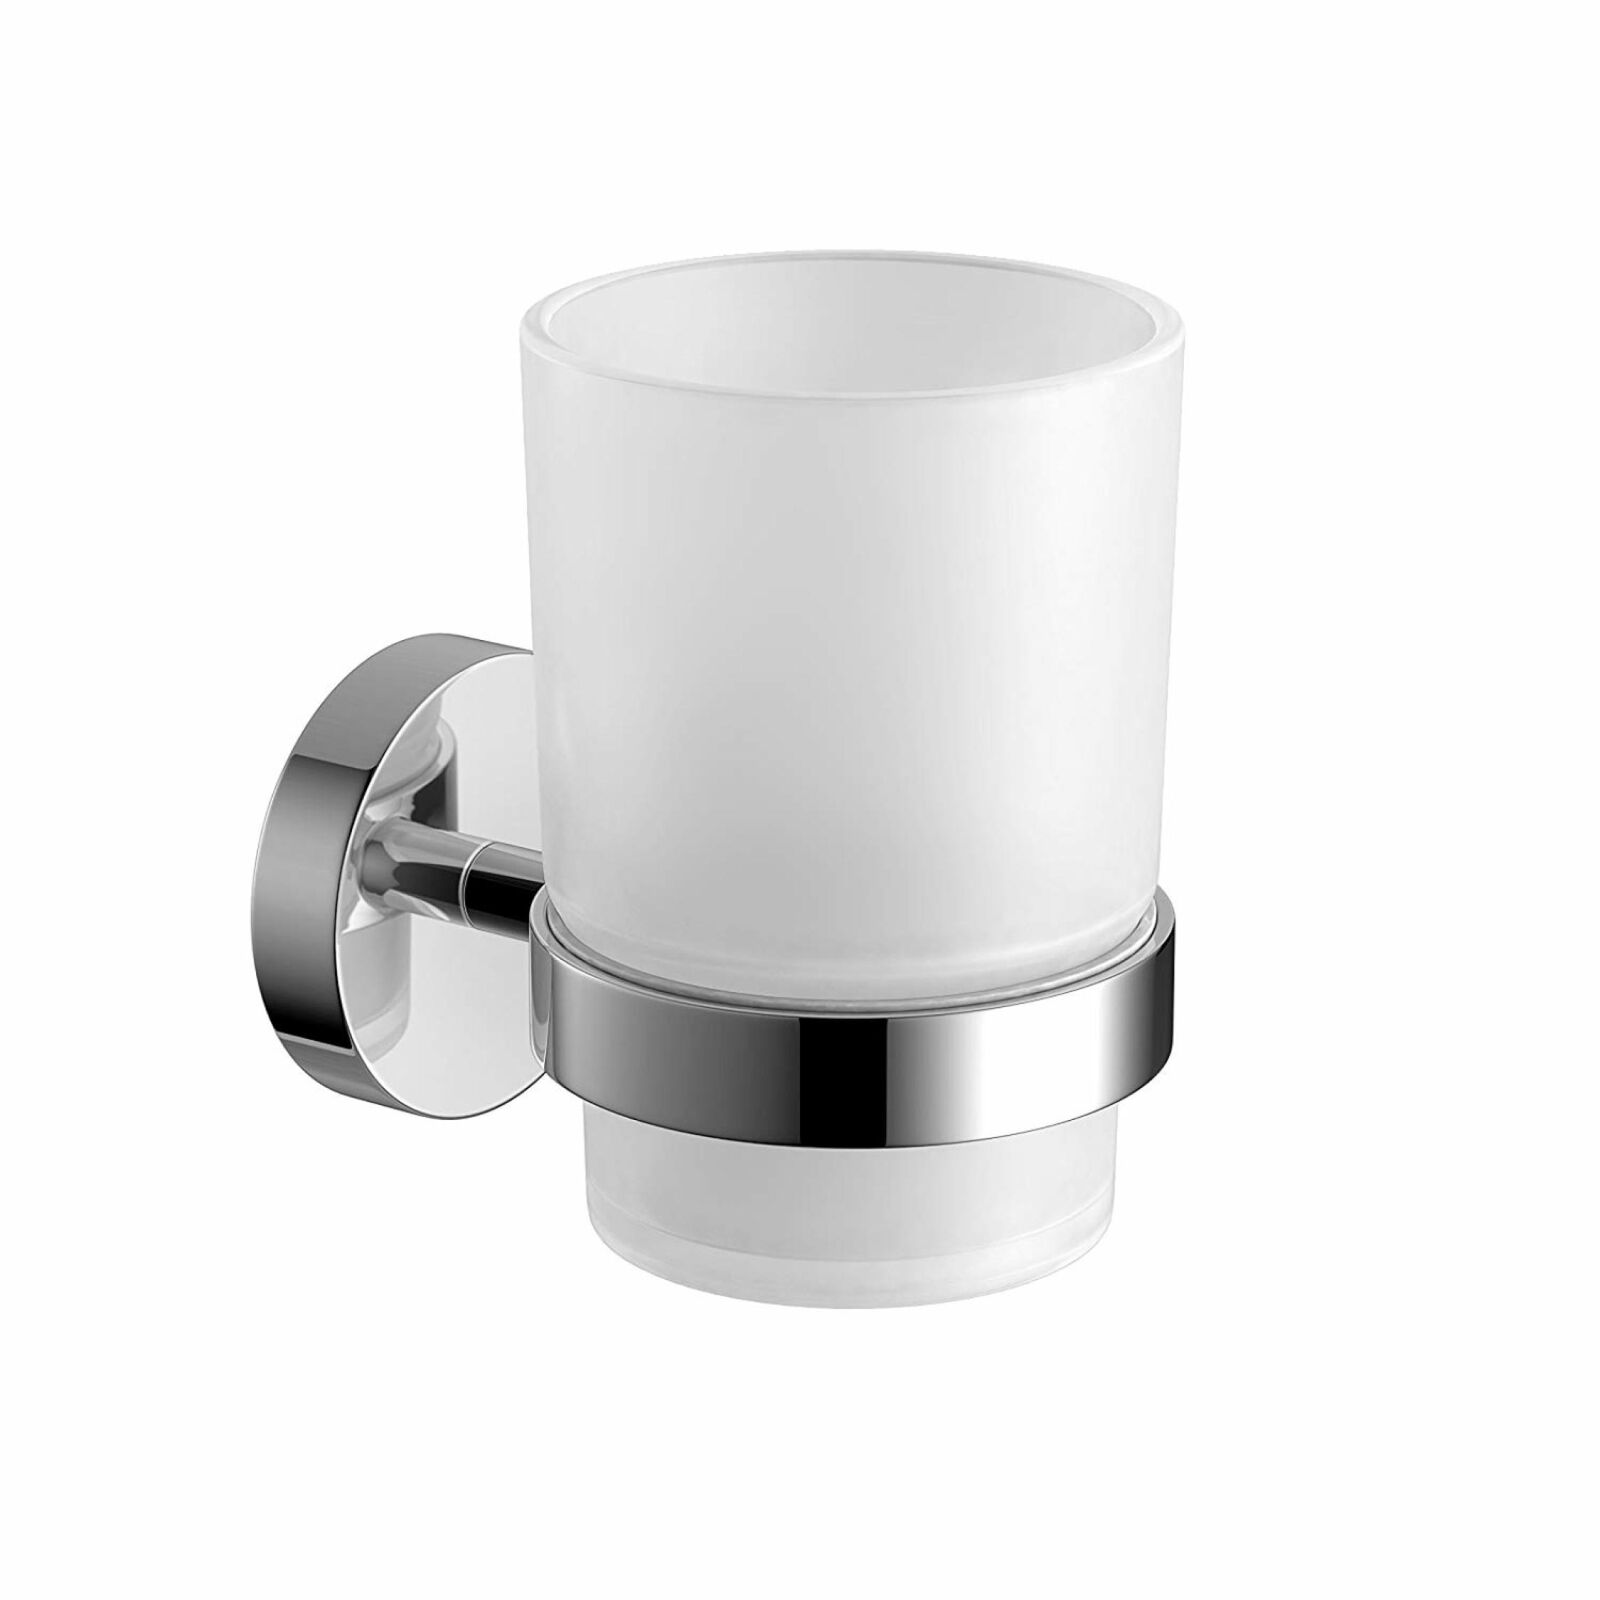 Toothbrush Holders Double Toothbrush Holder With Frosted Glass Cup Wall Mounted Holder Bathroom Accessories Home